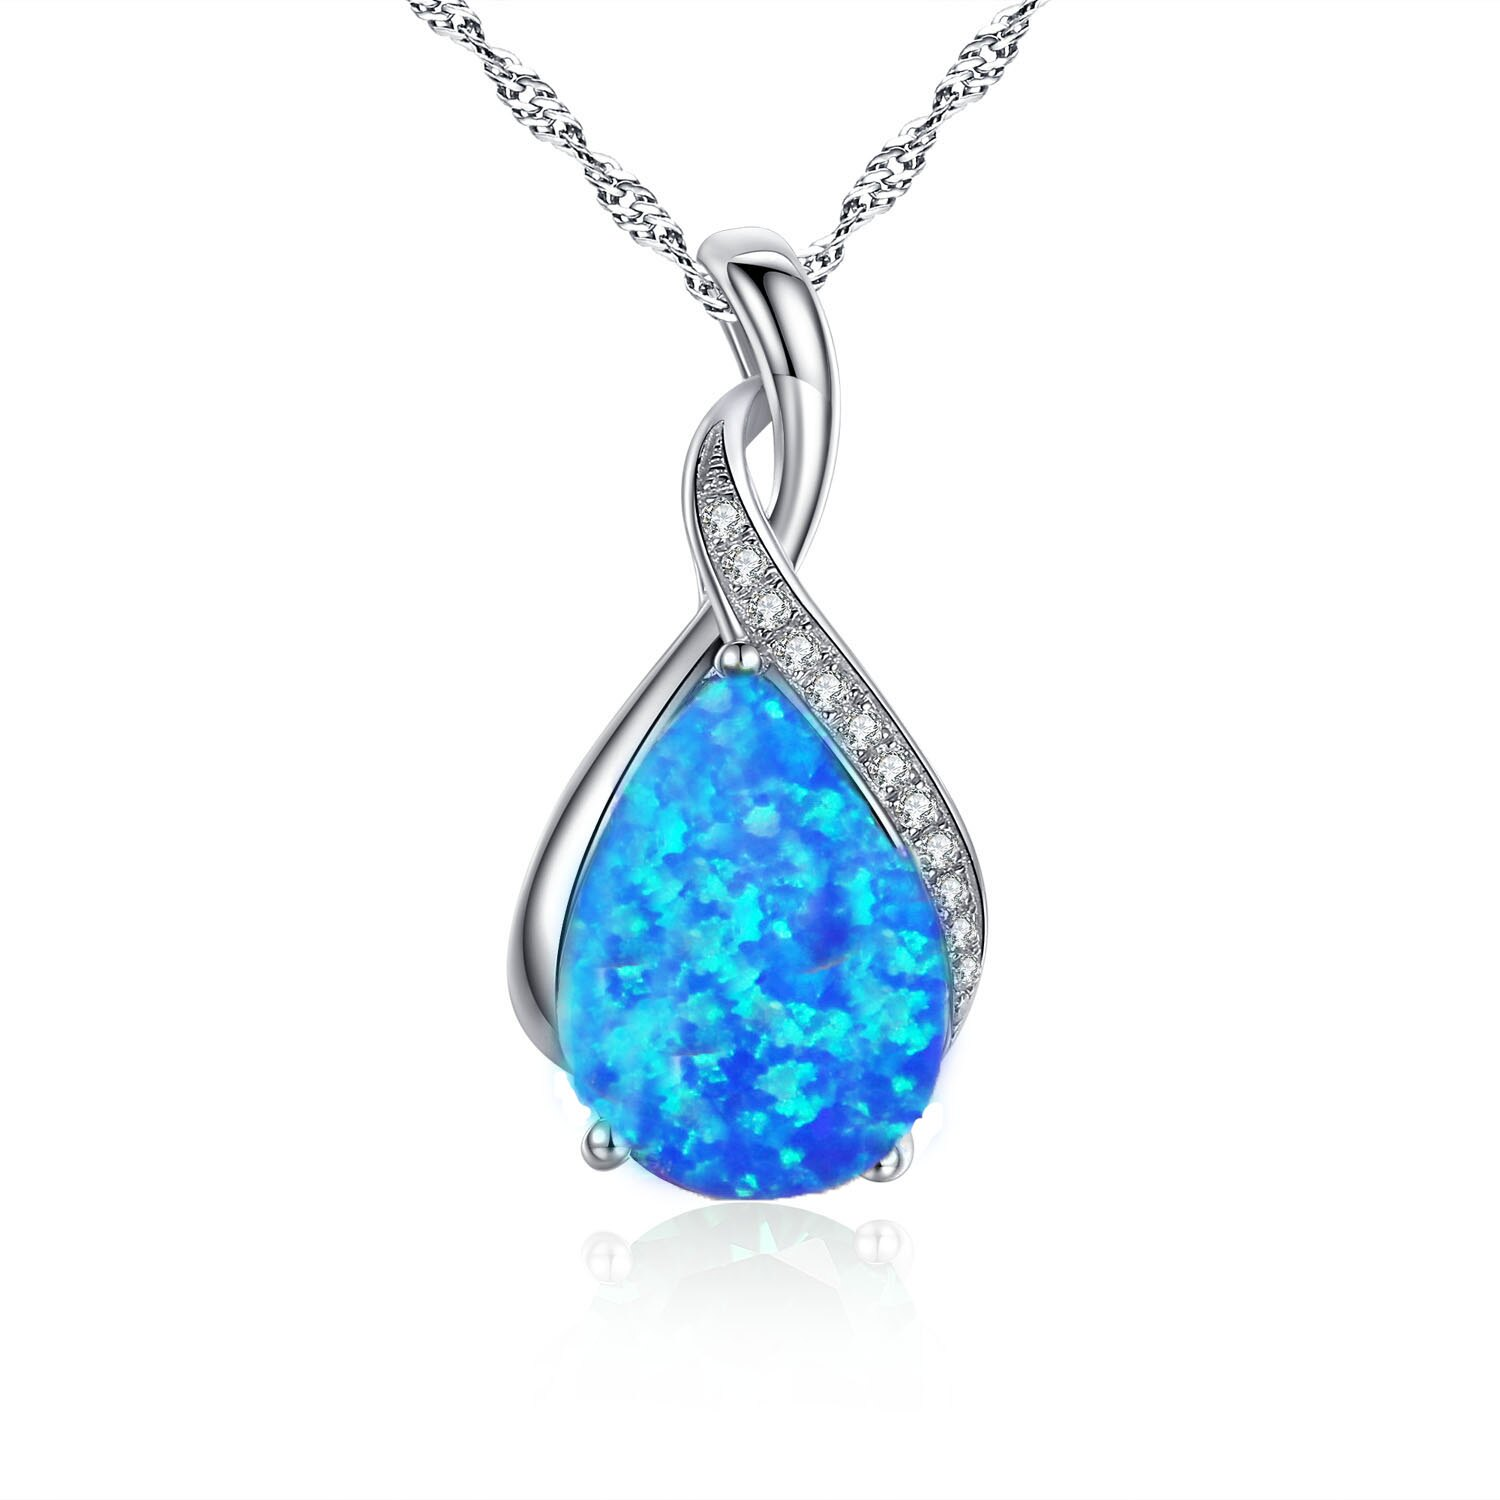 high exquisite pendant for opal blue necklaces fire product wolf quality silver star sterling wholesale beaded jewelora shape jewelry women necklace